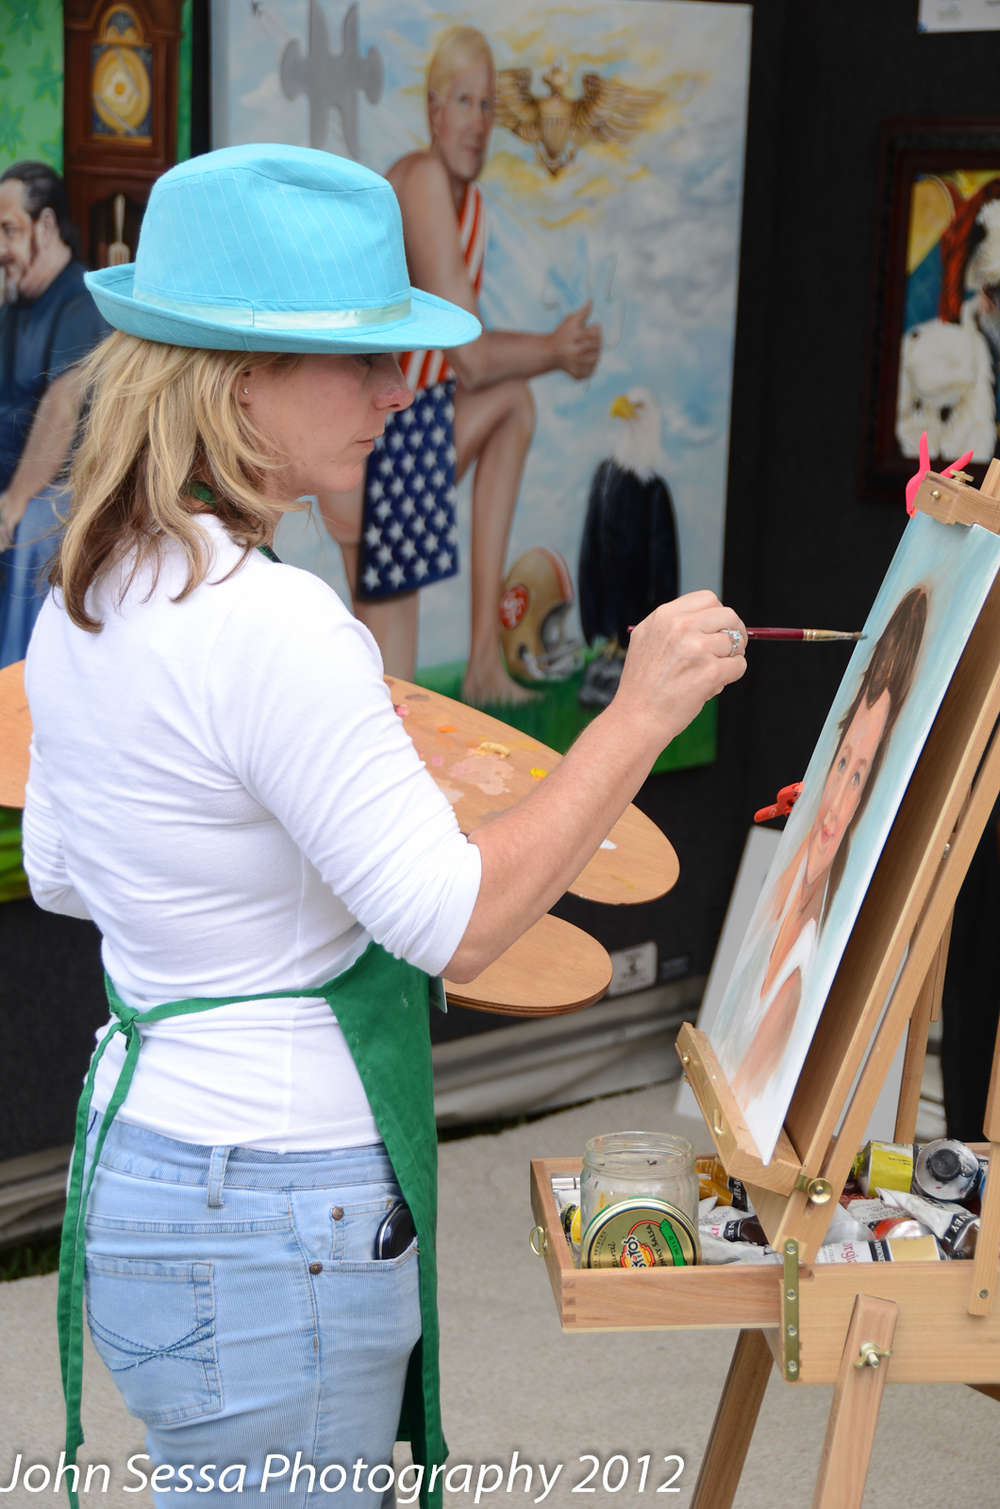 painting at Artigras